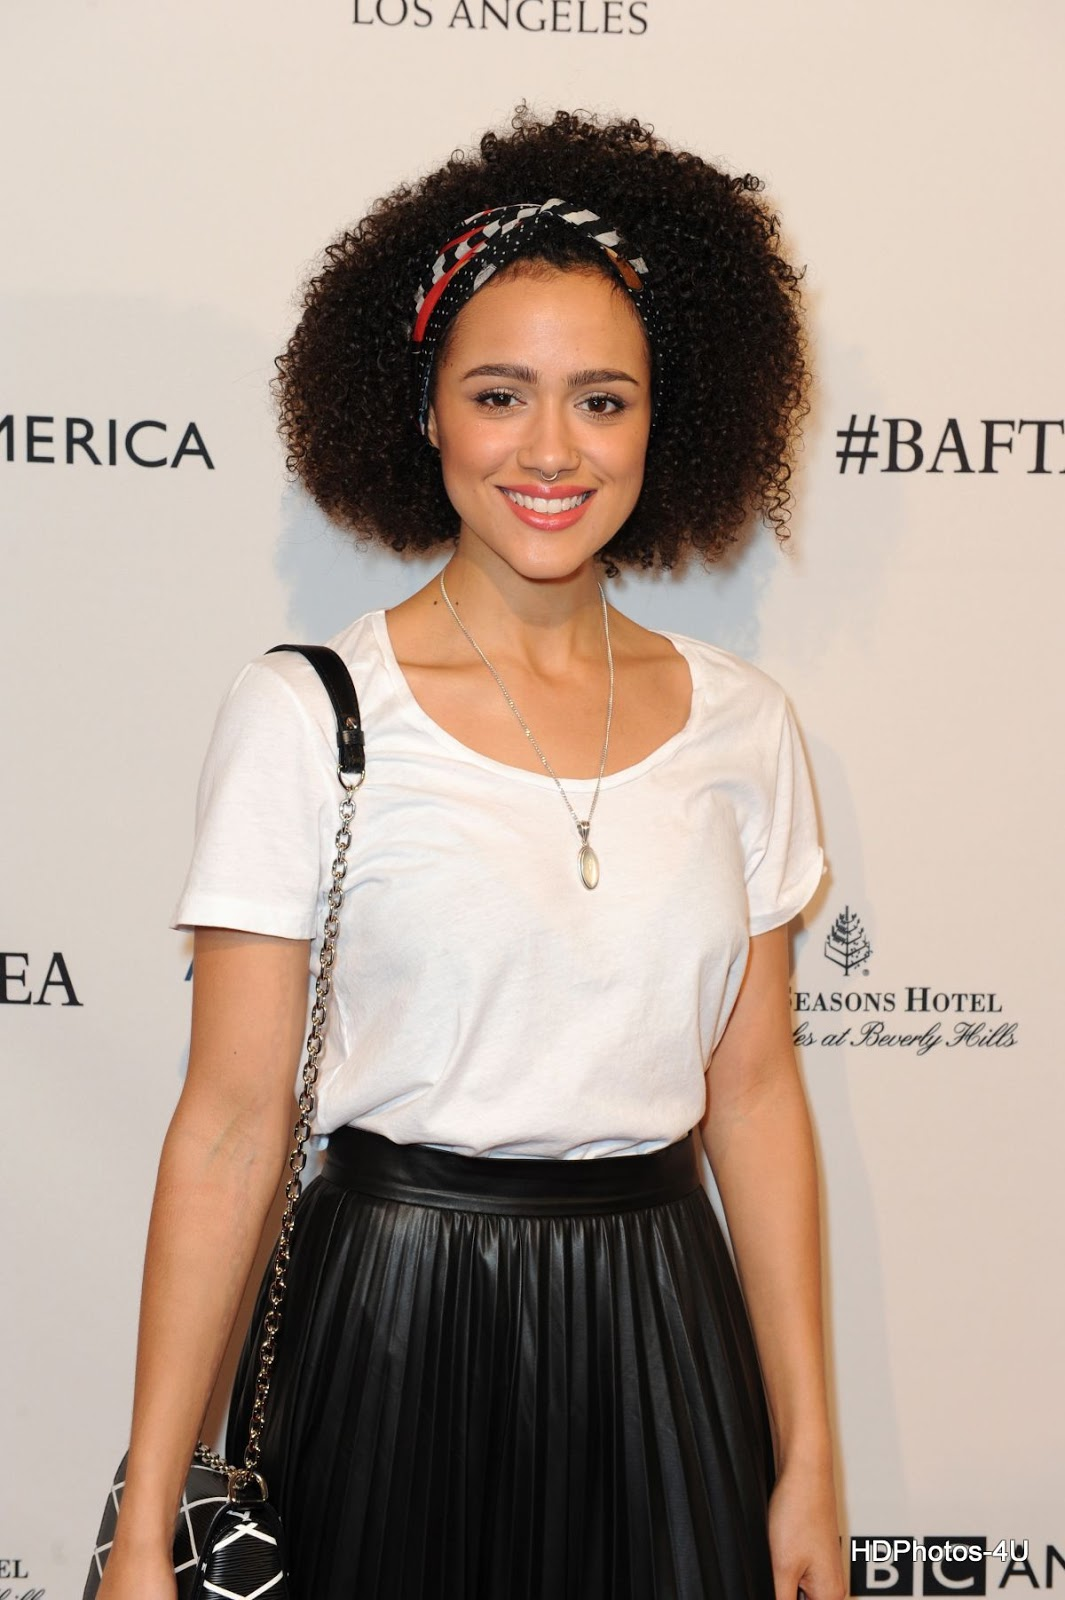 HD Photos of 'Fast 8' actress Nathalie Emmanuel at BAFTA Los Angeles Awards Season Tea in Los Angeles